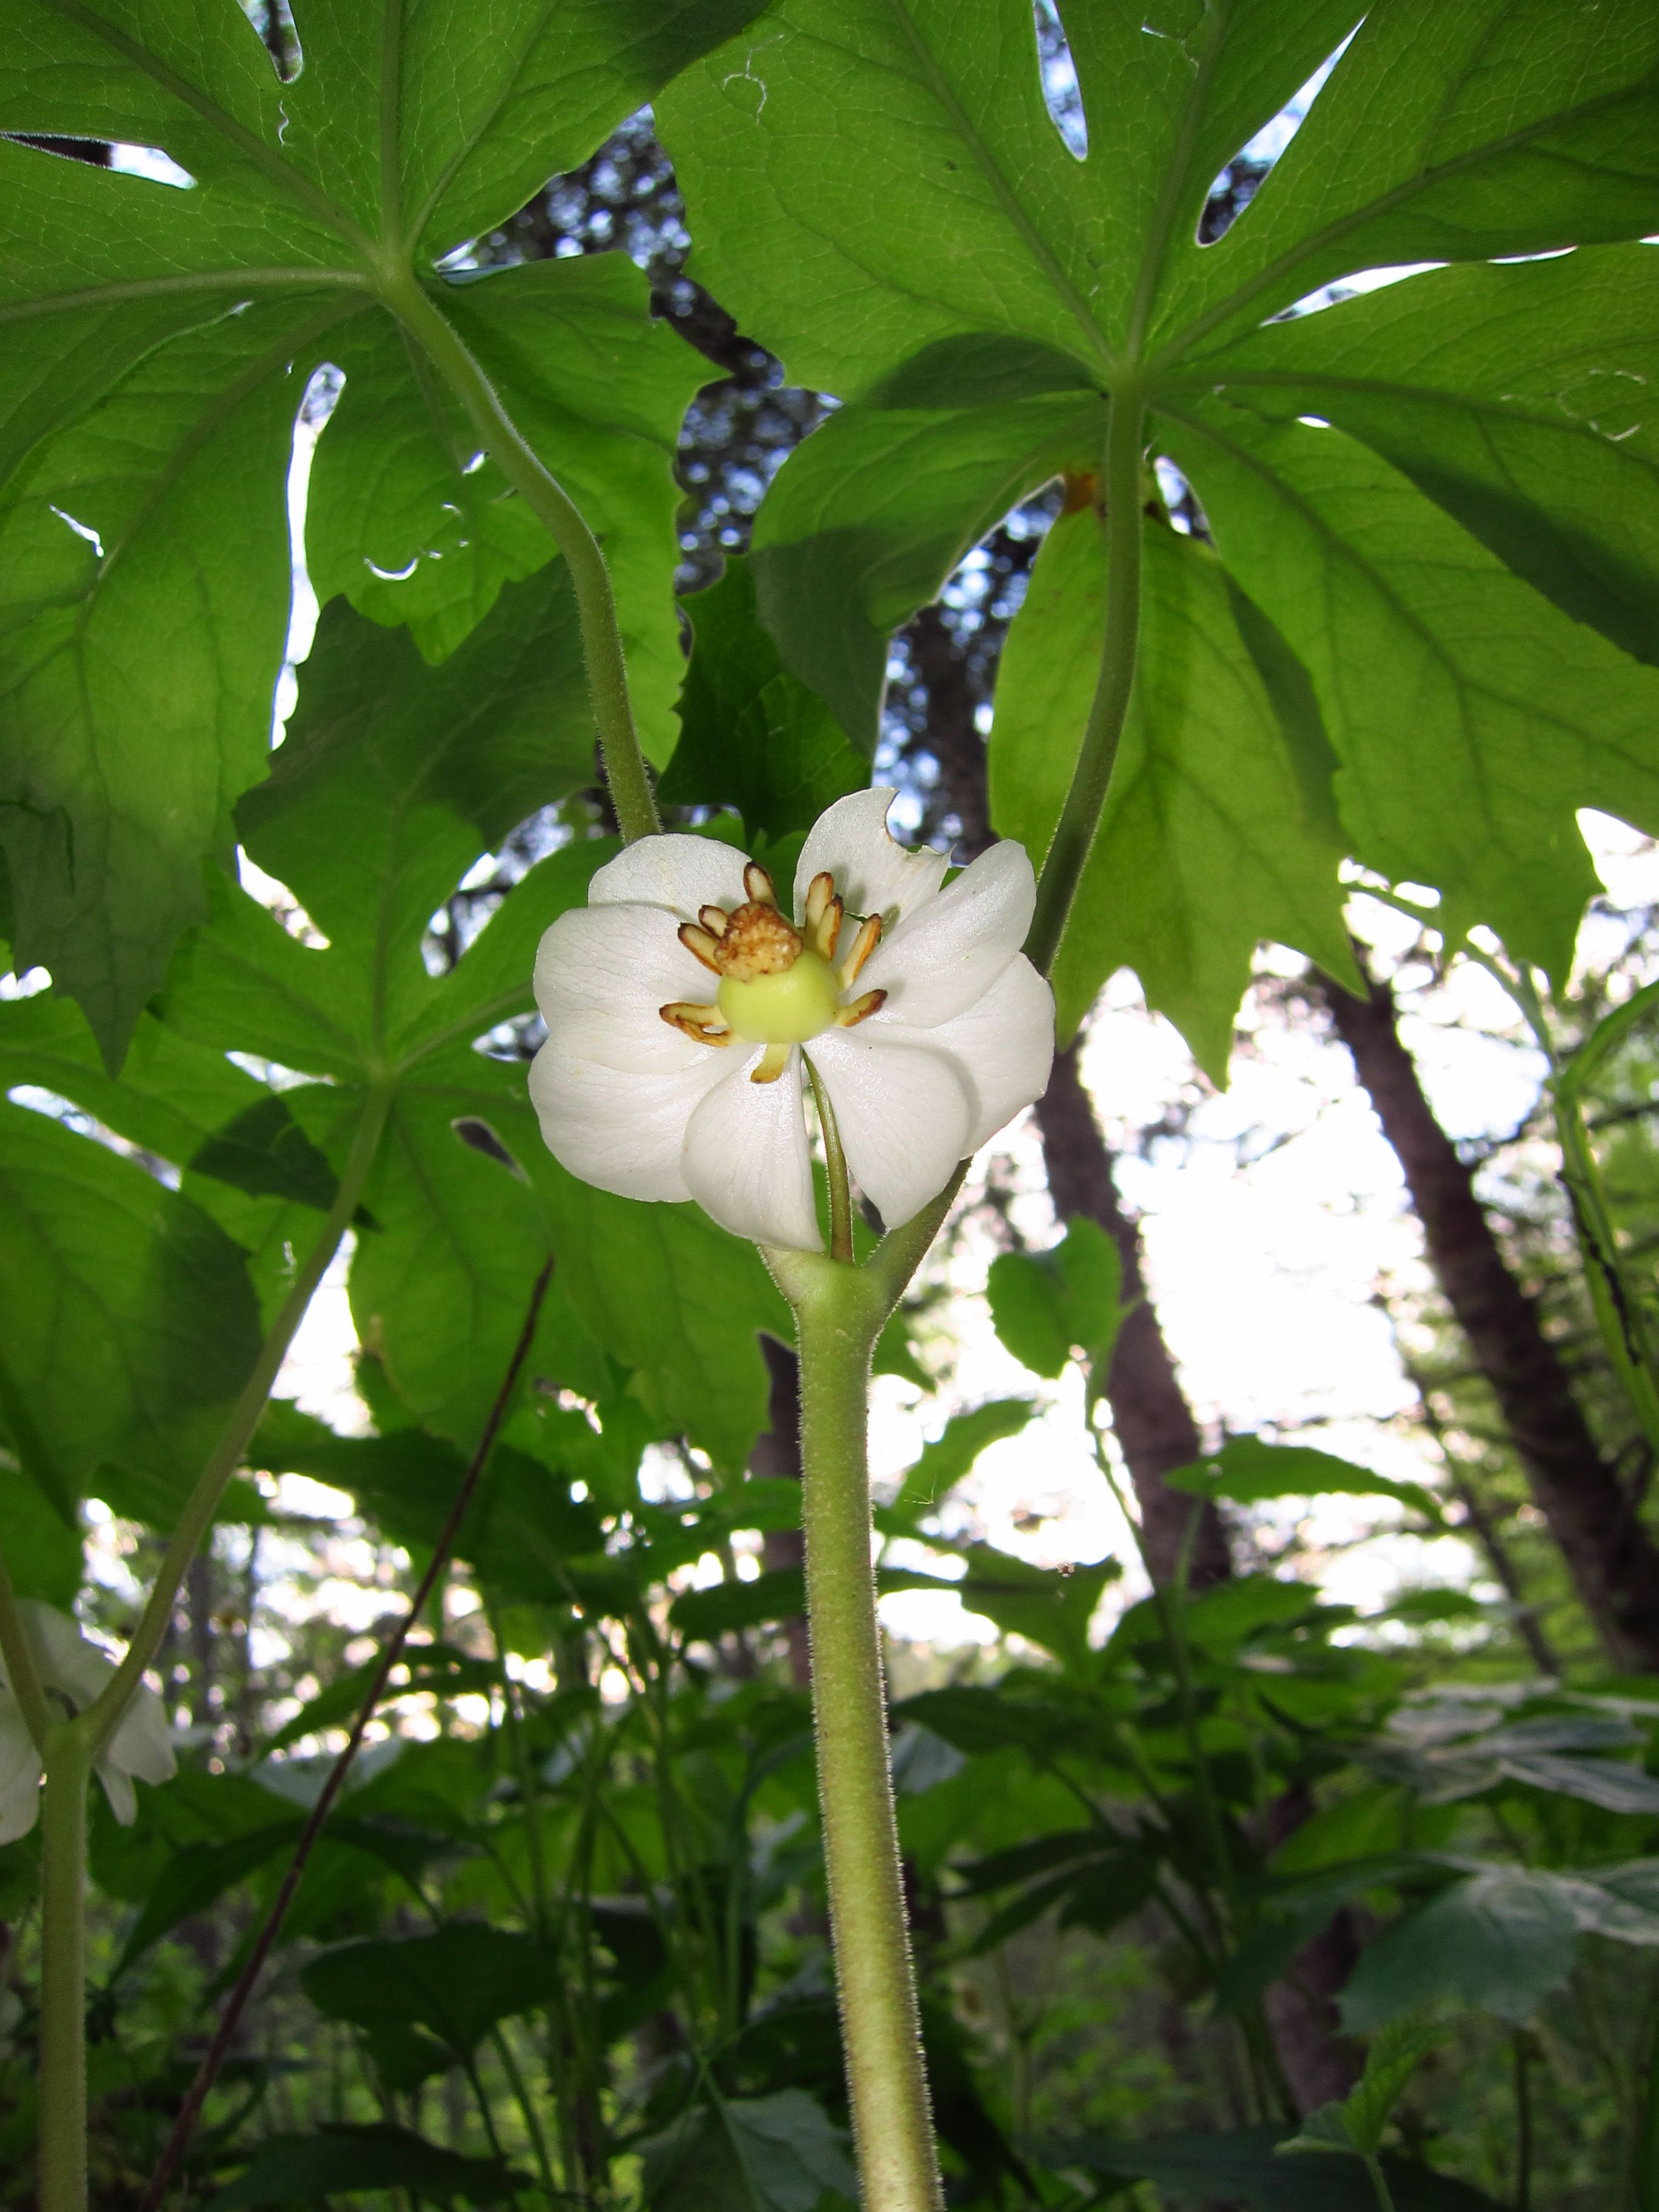 The Scientific Name is Podophyllum peltatum. You will likely hear them called Mayapple, May-apple, American Mandrake, Wild Mandrake, Indian Apple, Pomme de Mai, Podophylle Pelt. This picture shows the Beneath the Canopy of Podophyllum peltatum